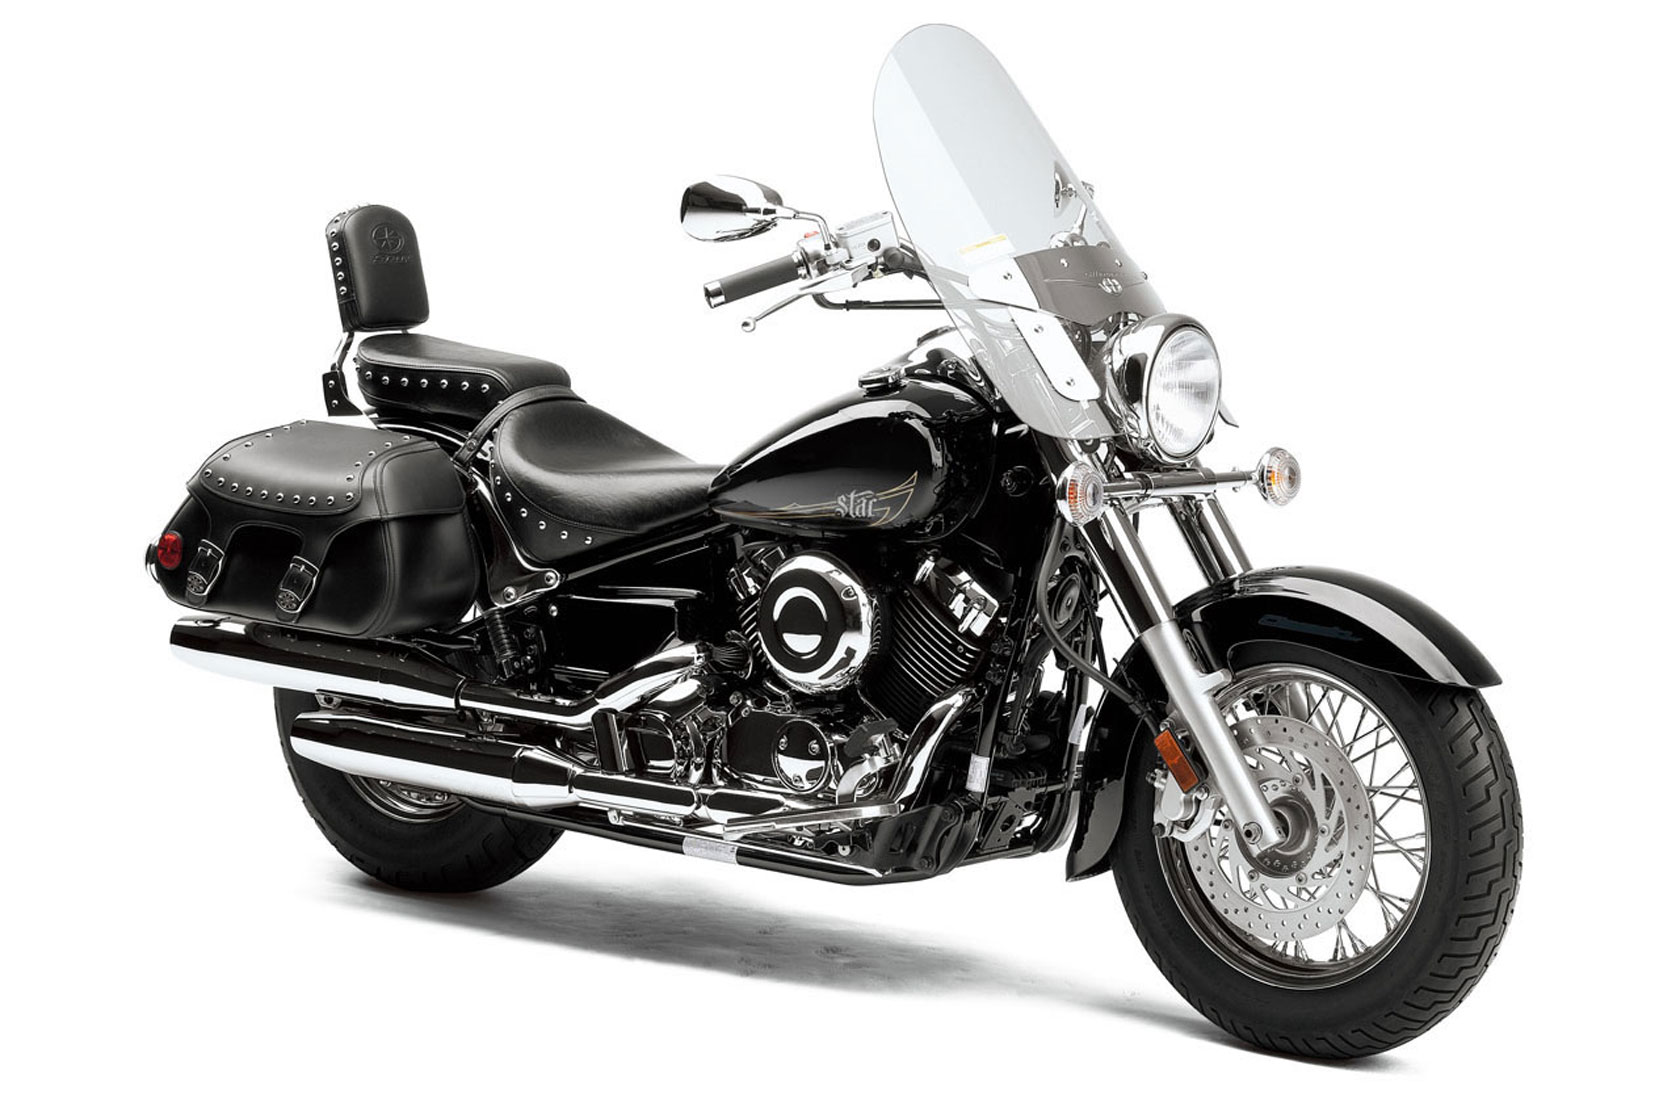 2013 Yamaha V Star 650 Custom Motorcycle Wallpaper   Wallpapers